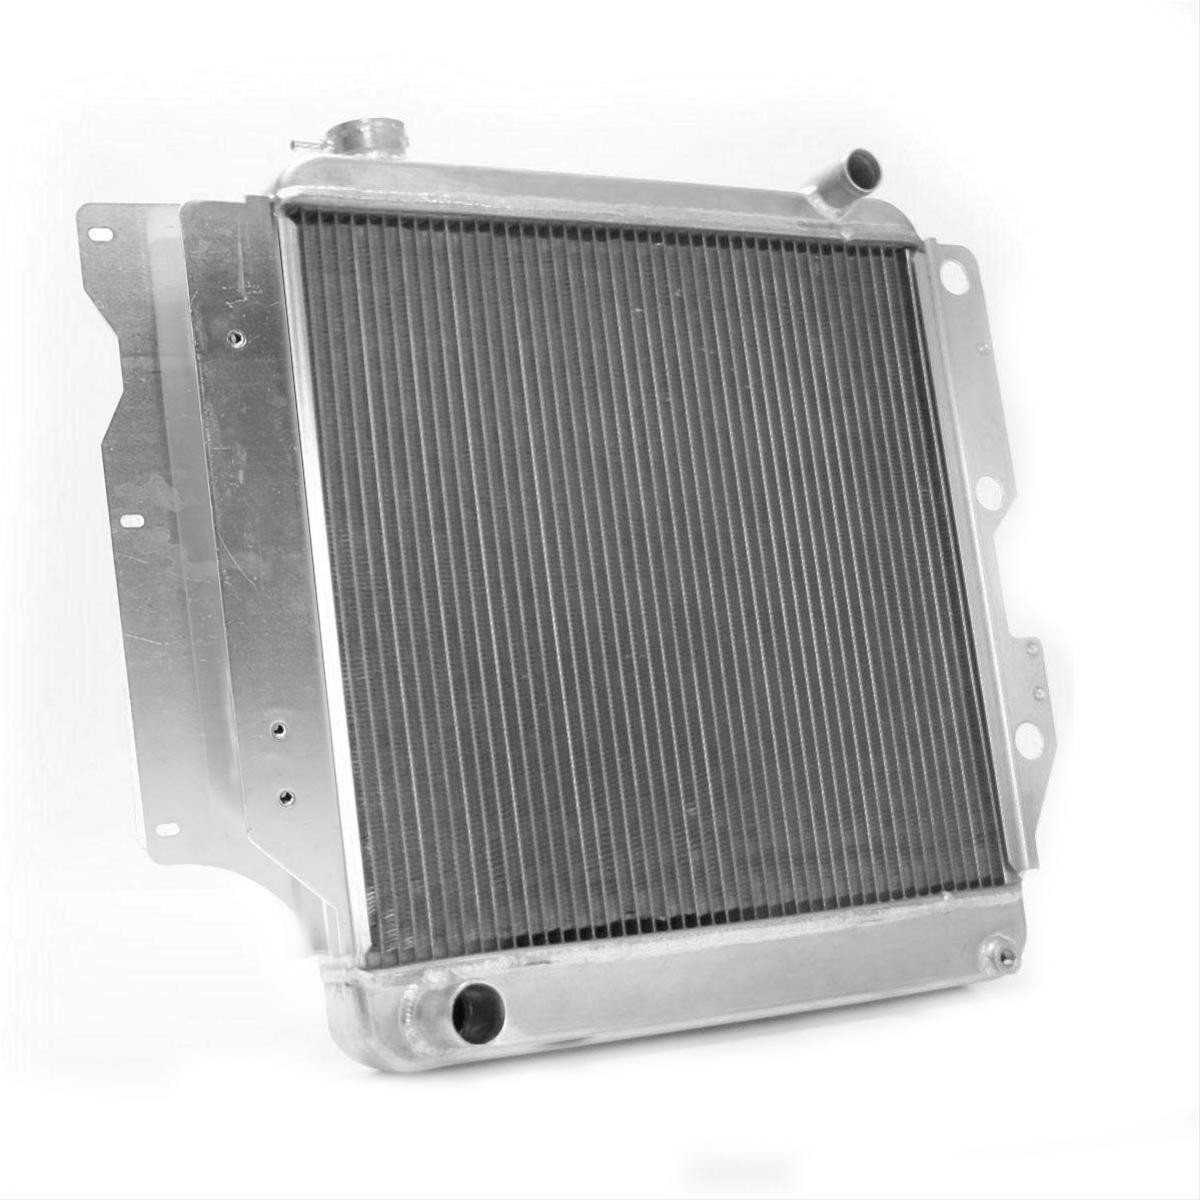 Griffin Jeep TJ/LJ/YJ Aluminum Radiator Only